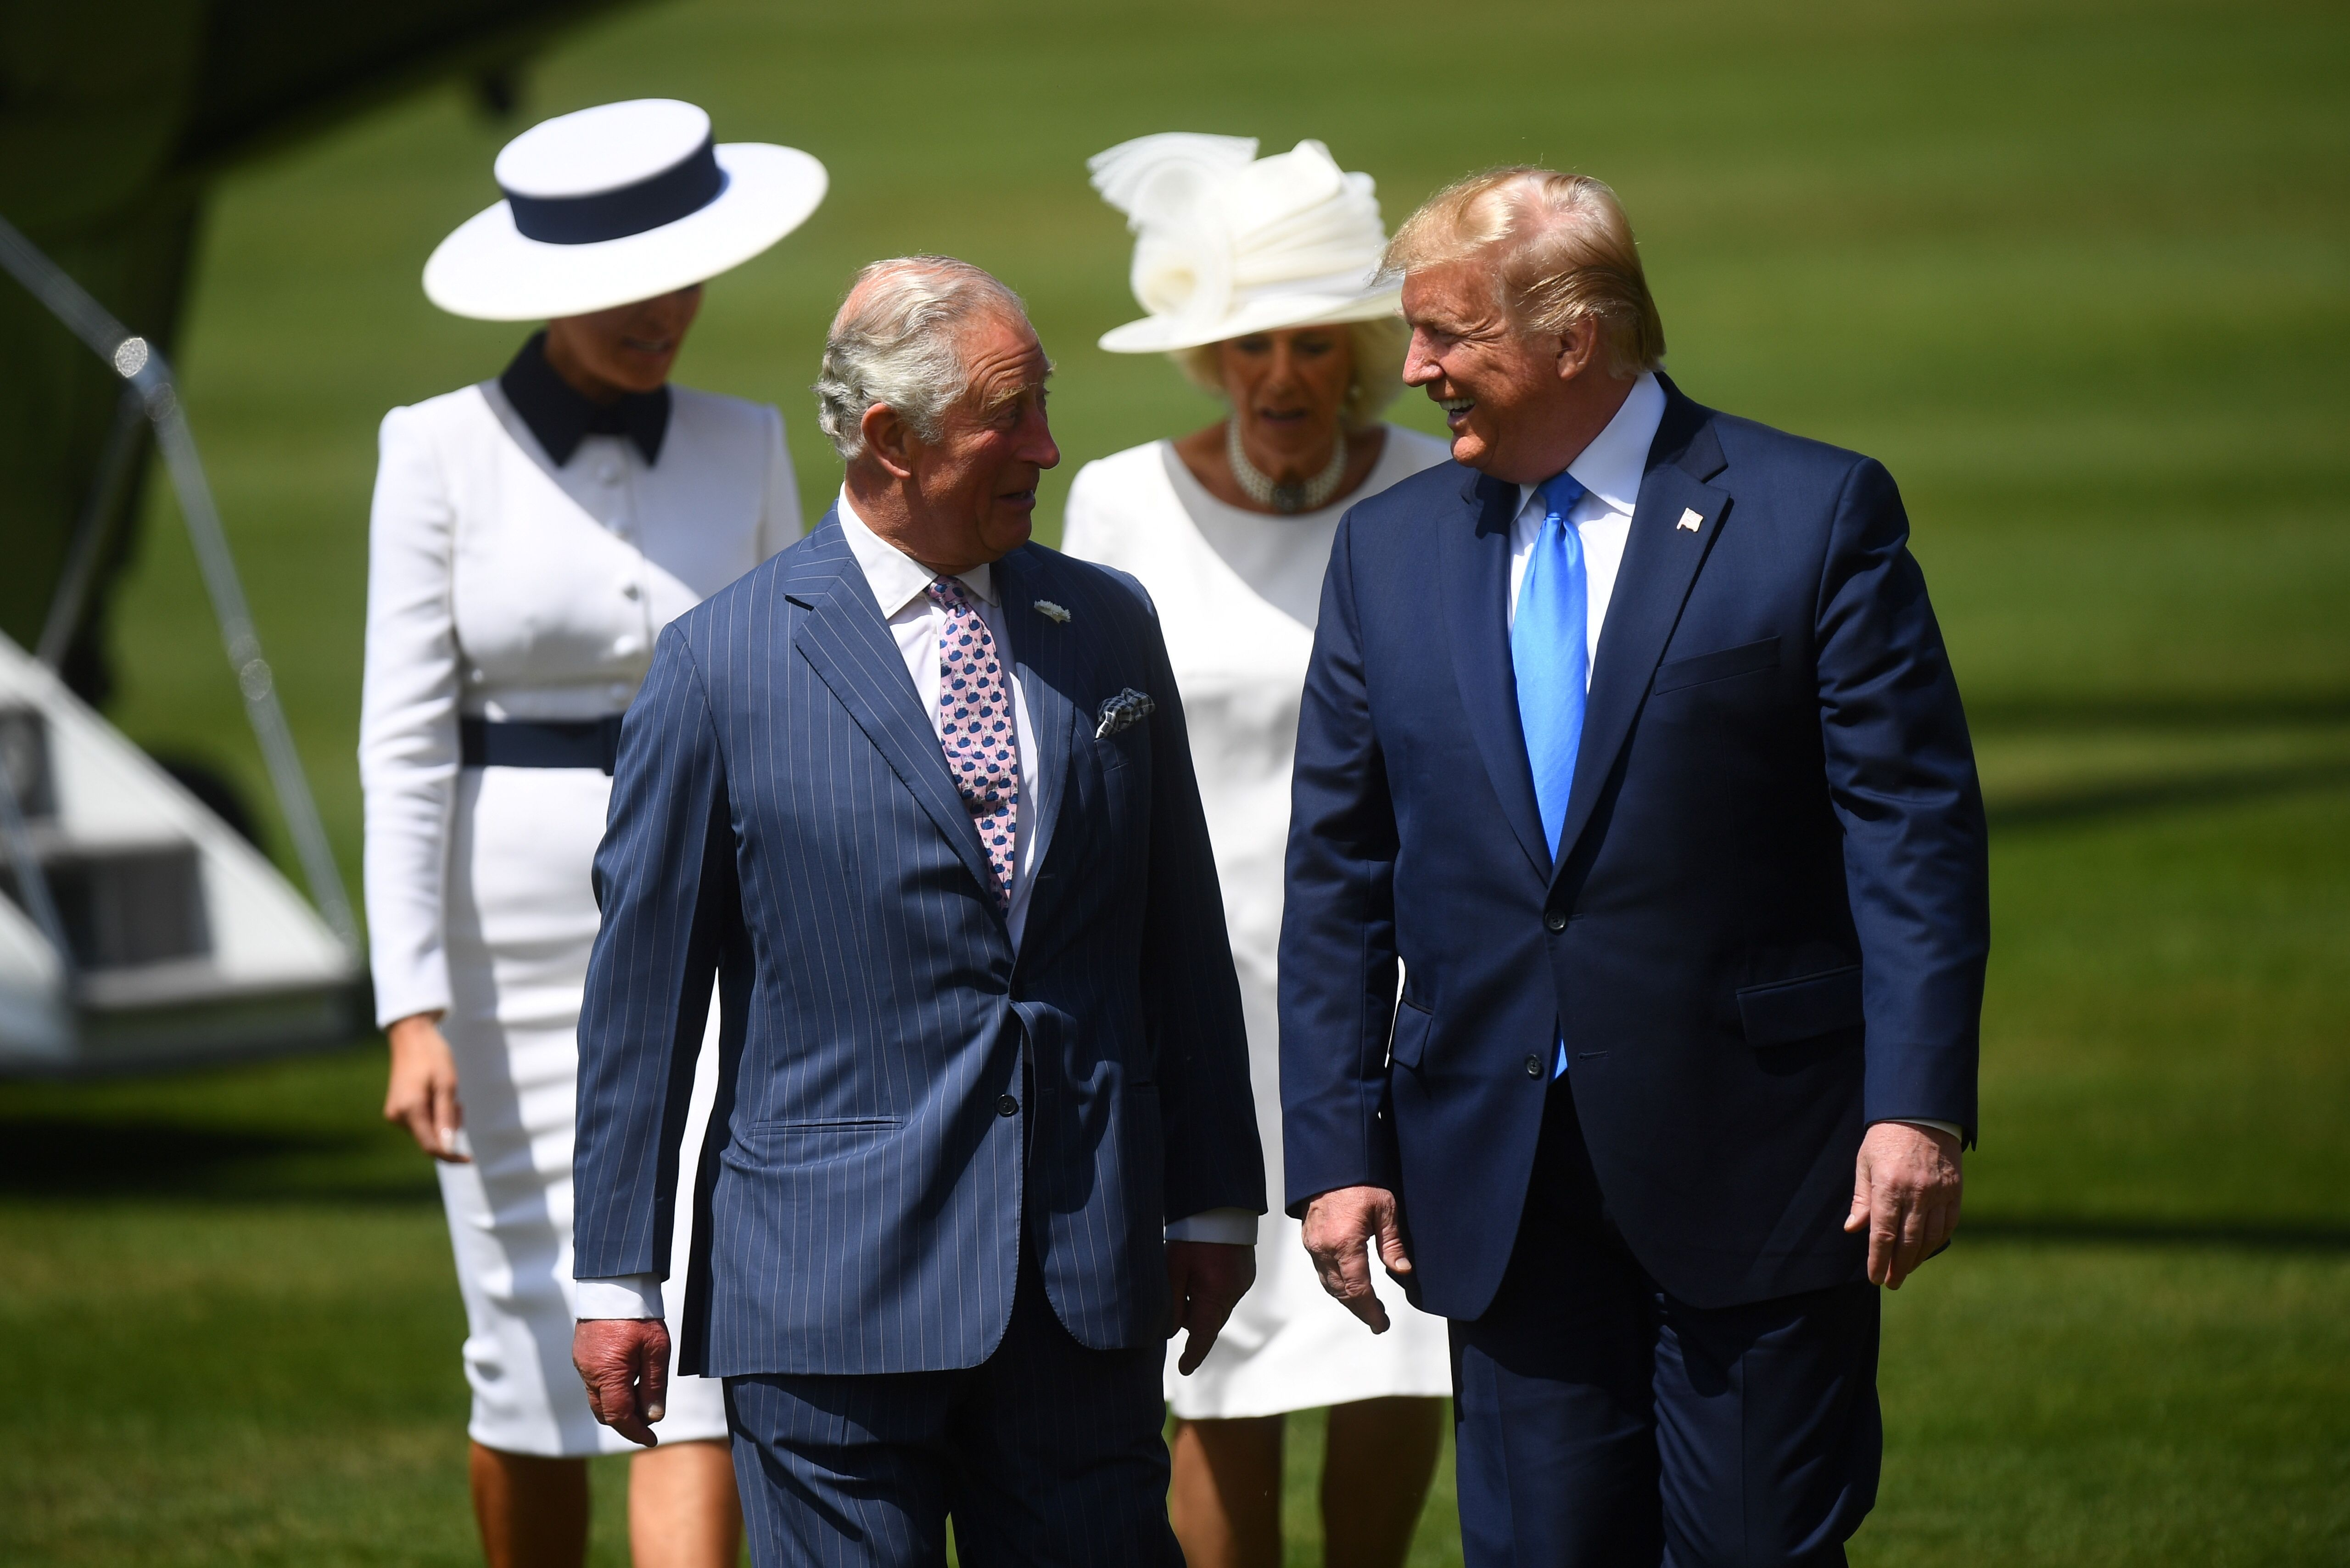 US President Donald Trump (R) walks with Britain's Prince Charles, Prince of Wales (3R), and US First Lady Melania Trump (L) walks with Britain's Camilla, Duchess of Cornwall as they arrive for a welcome ceremony at Buckingham Palace in central London on June 3, 2019, on the first day of the US president and First Lady's three-day State Visit to the UK. - Britain rolled out the red carpet for US President Donald Trump on June 3 as he arrived in Britain for a state visit already overshadowed by his outspoken remarks on Brexit. (Photo by Victoria Jones / POOL / AFP)        (Photo credit should read VICTORIA JONES/AFP/Getty Images)